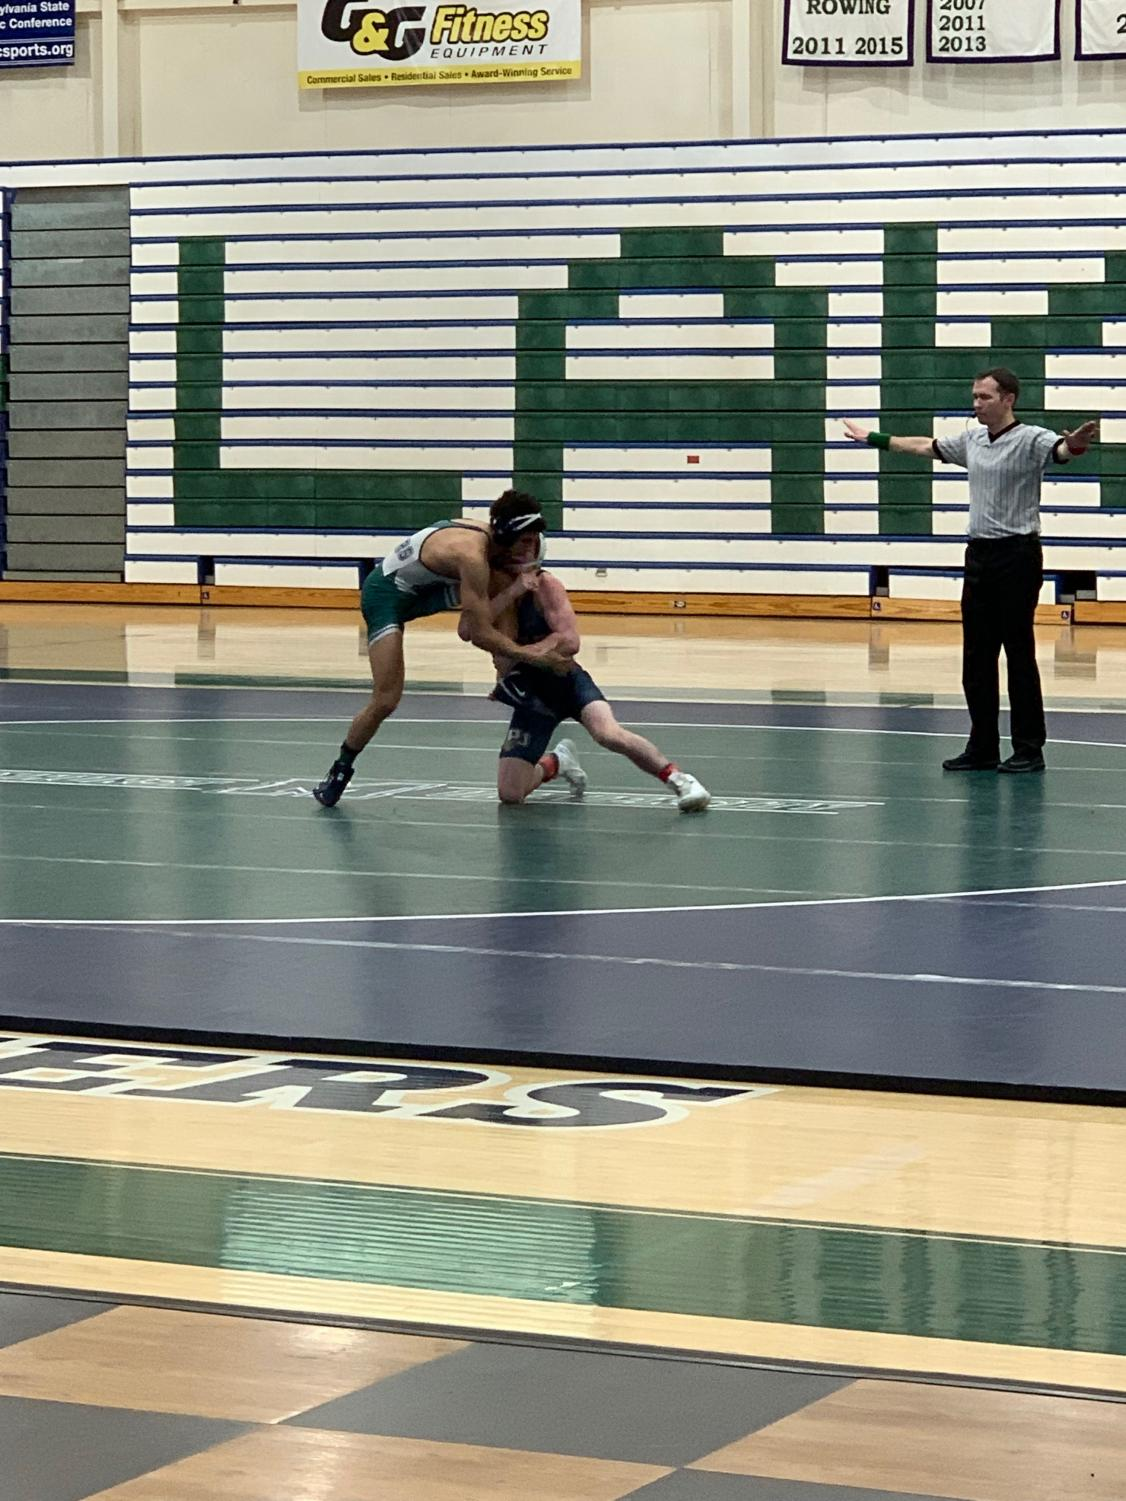 Mercyhurst's Alexis Soriano grapples with Matthew Siszka of Pitt-Johnstown.  The Lakers fell 9-30 against the Mountain Cats, but were victorious 30-12 against University of Findlay for Senior Day.